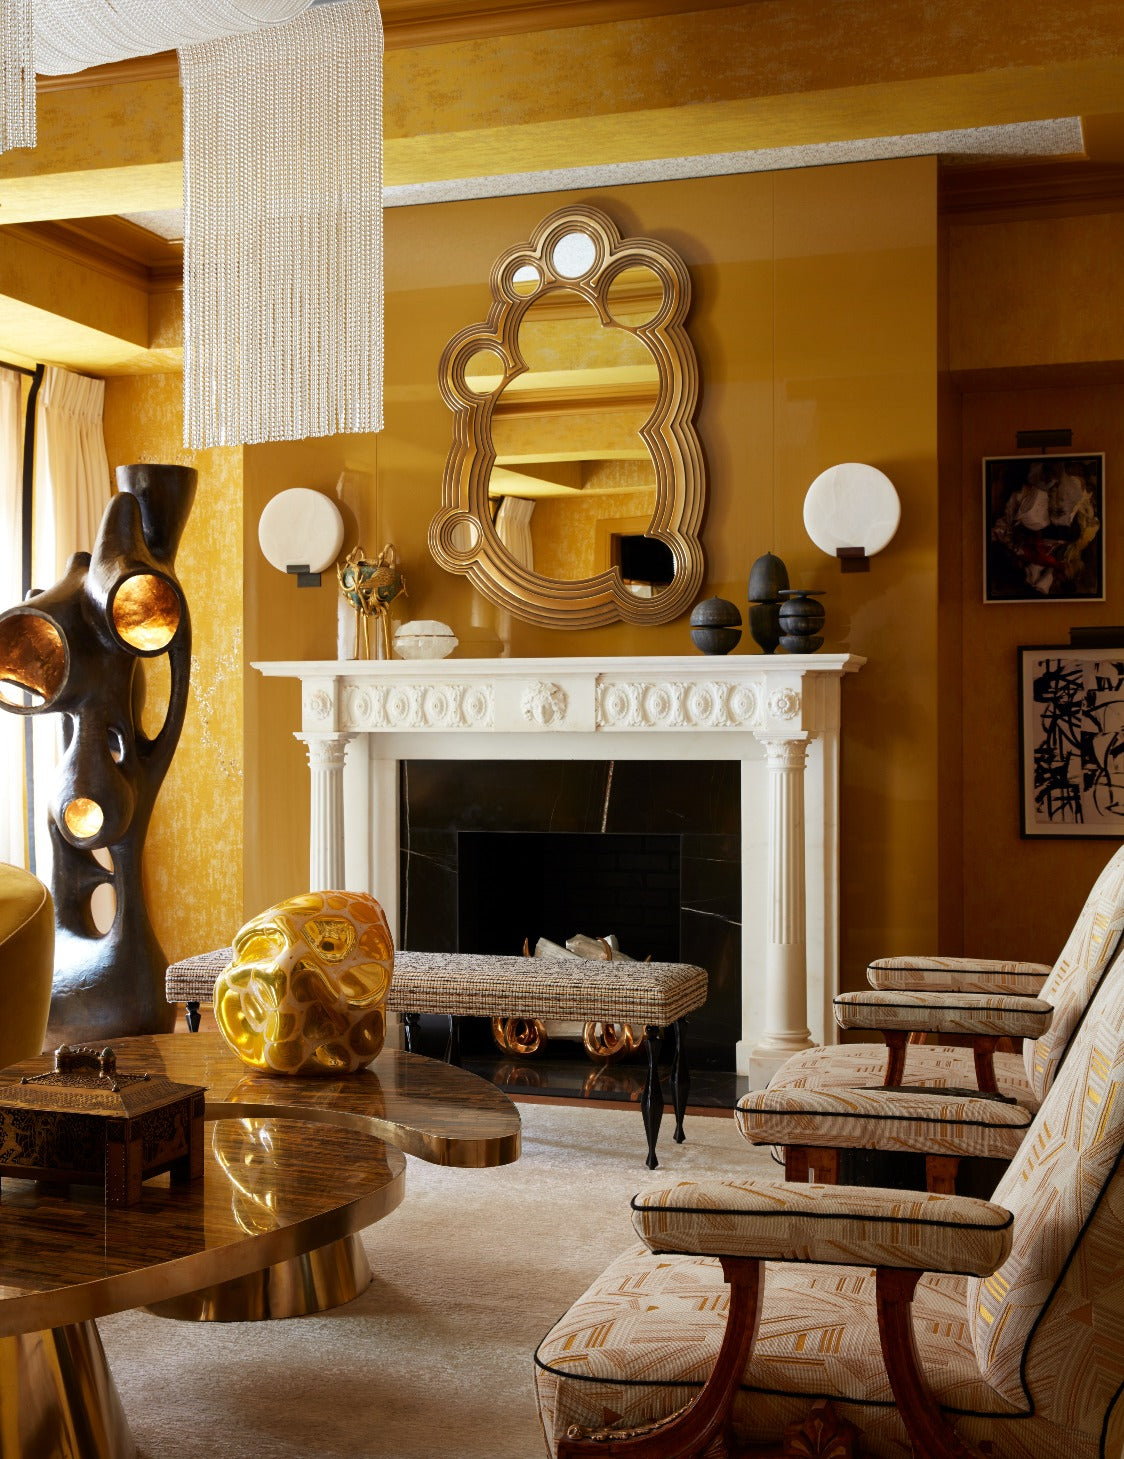 Best Yellow Living Room Ideas | Yellow Living Room Accessories | Decorating with Yellow | LuxDeco.com Style Guide